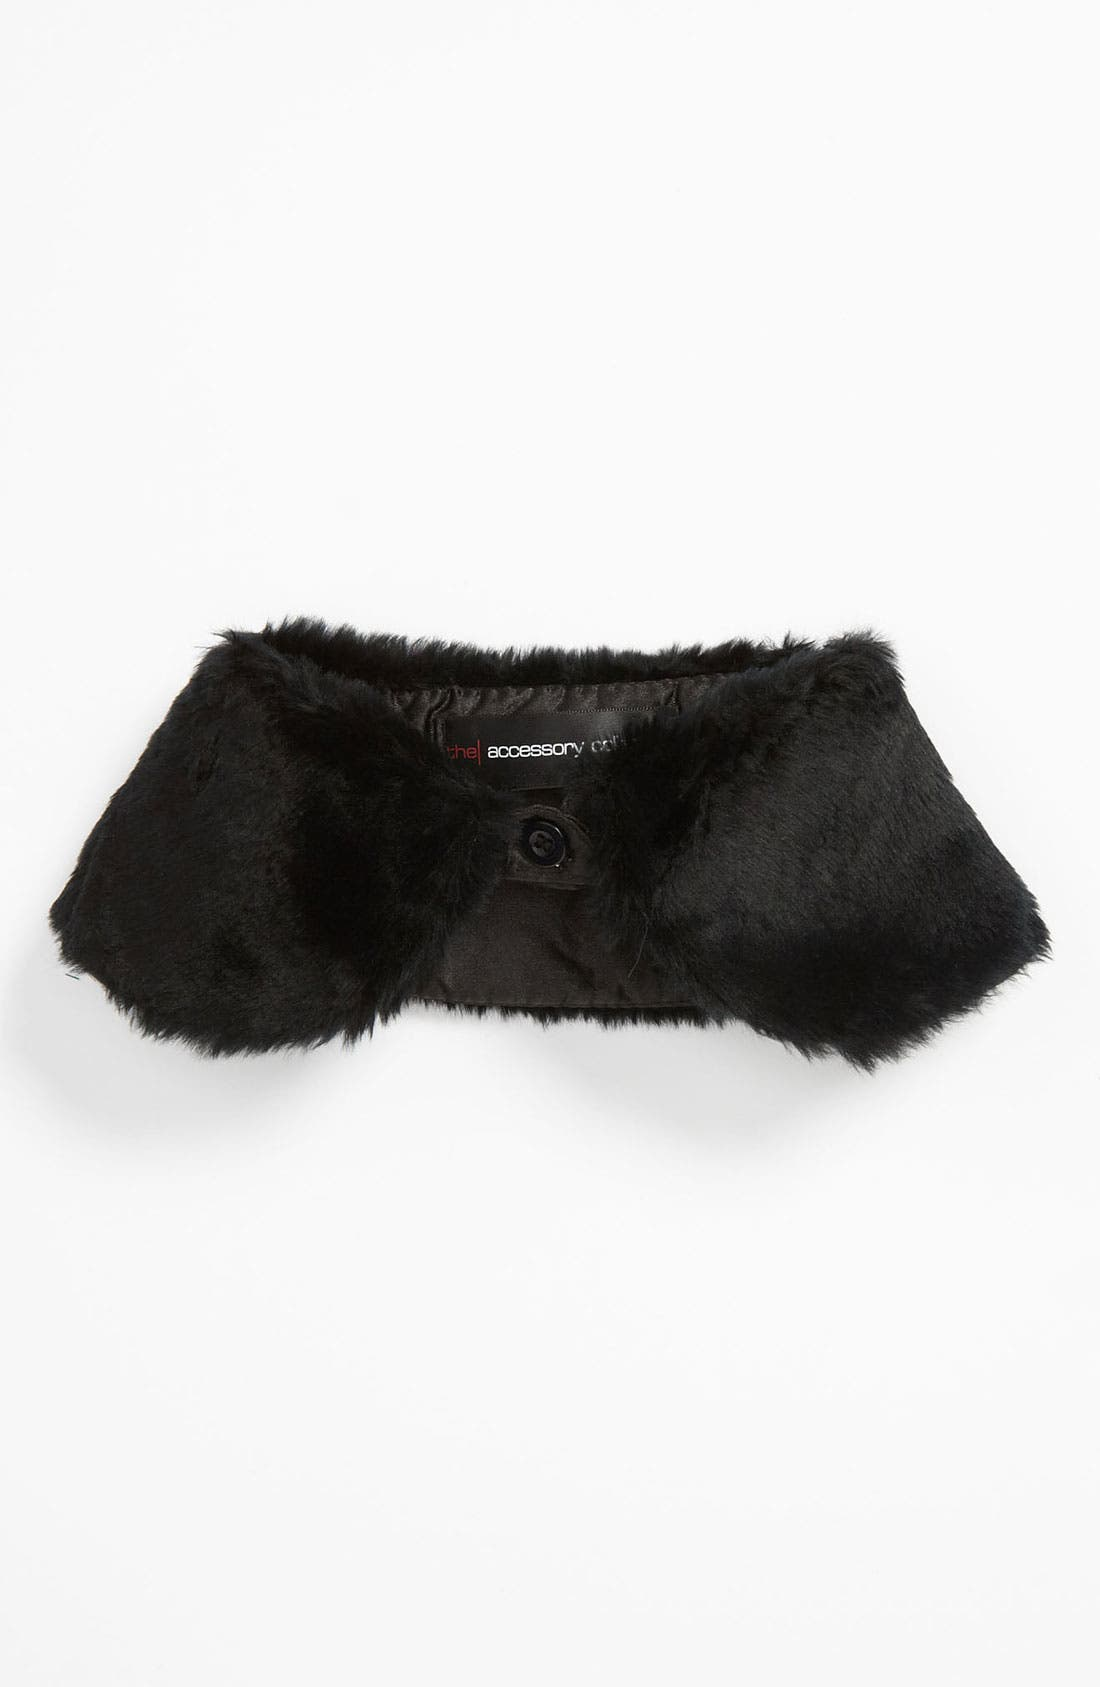 Main Image - The Accessory Collection Faux Fur Collar (Girls)